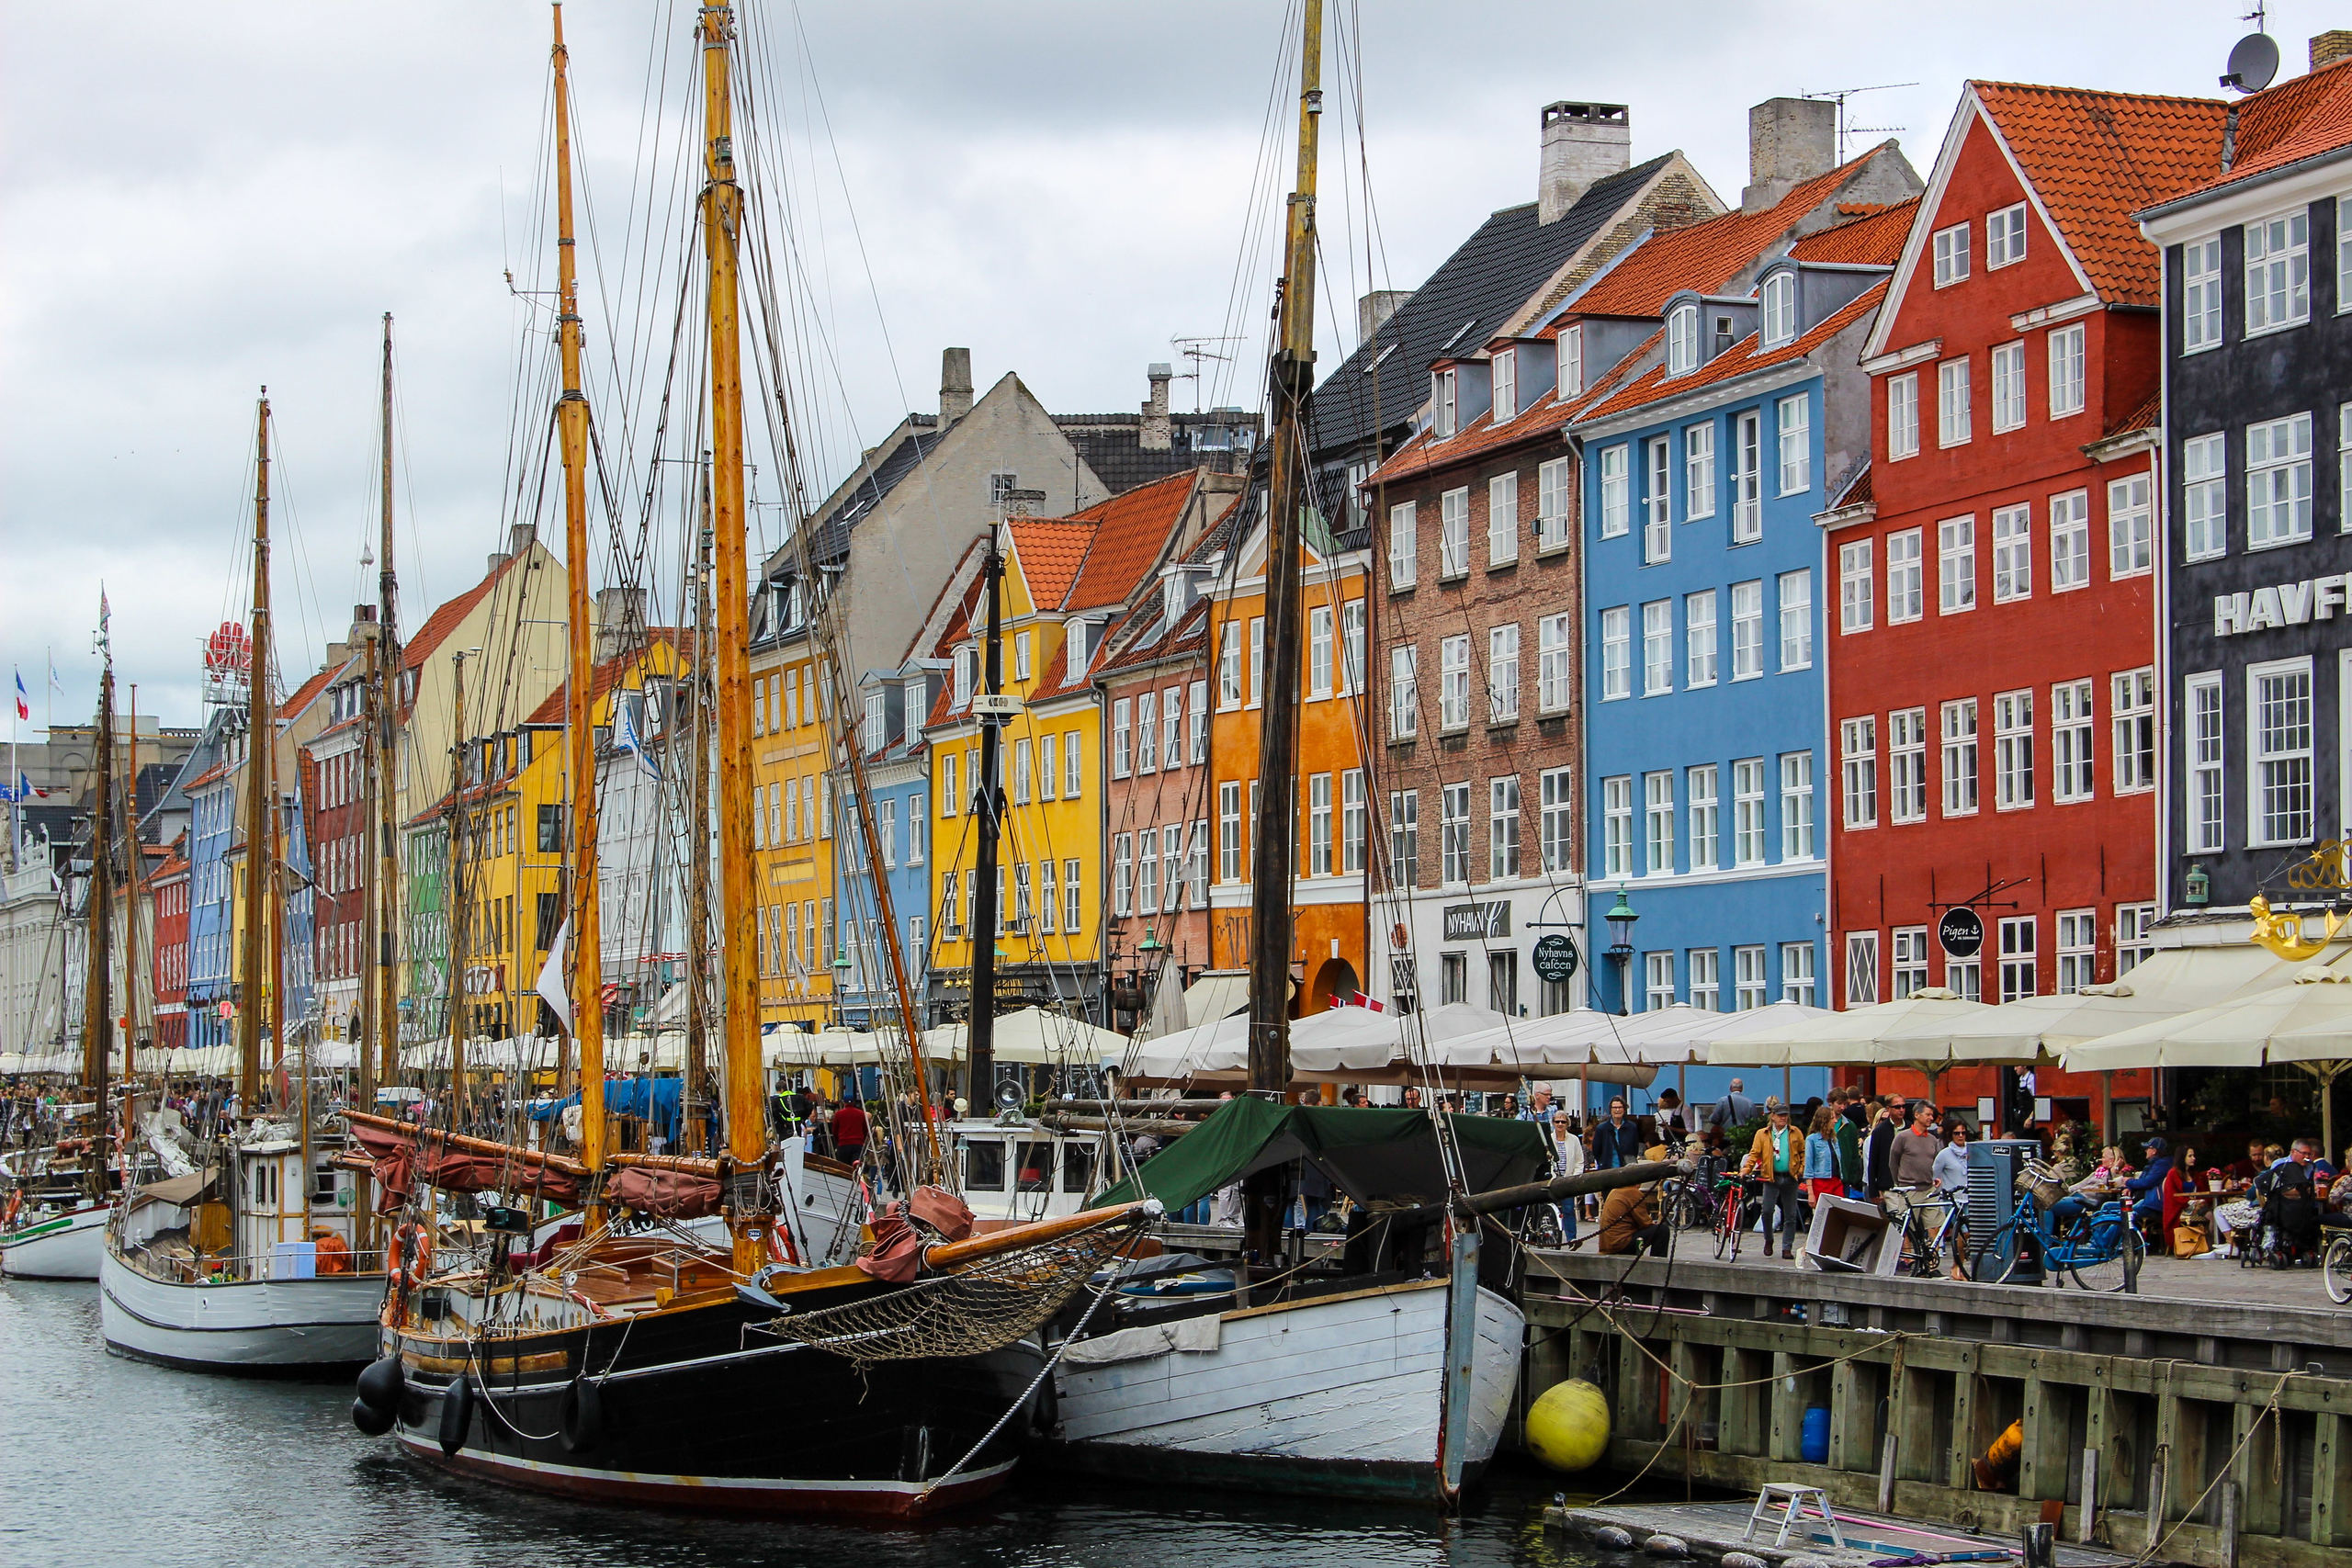 copenhagen is a great option for travelling to europe for the first time